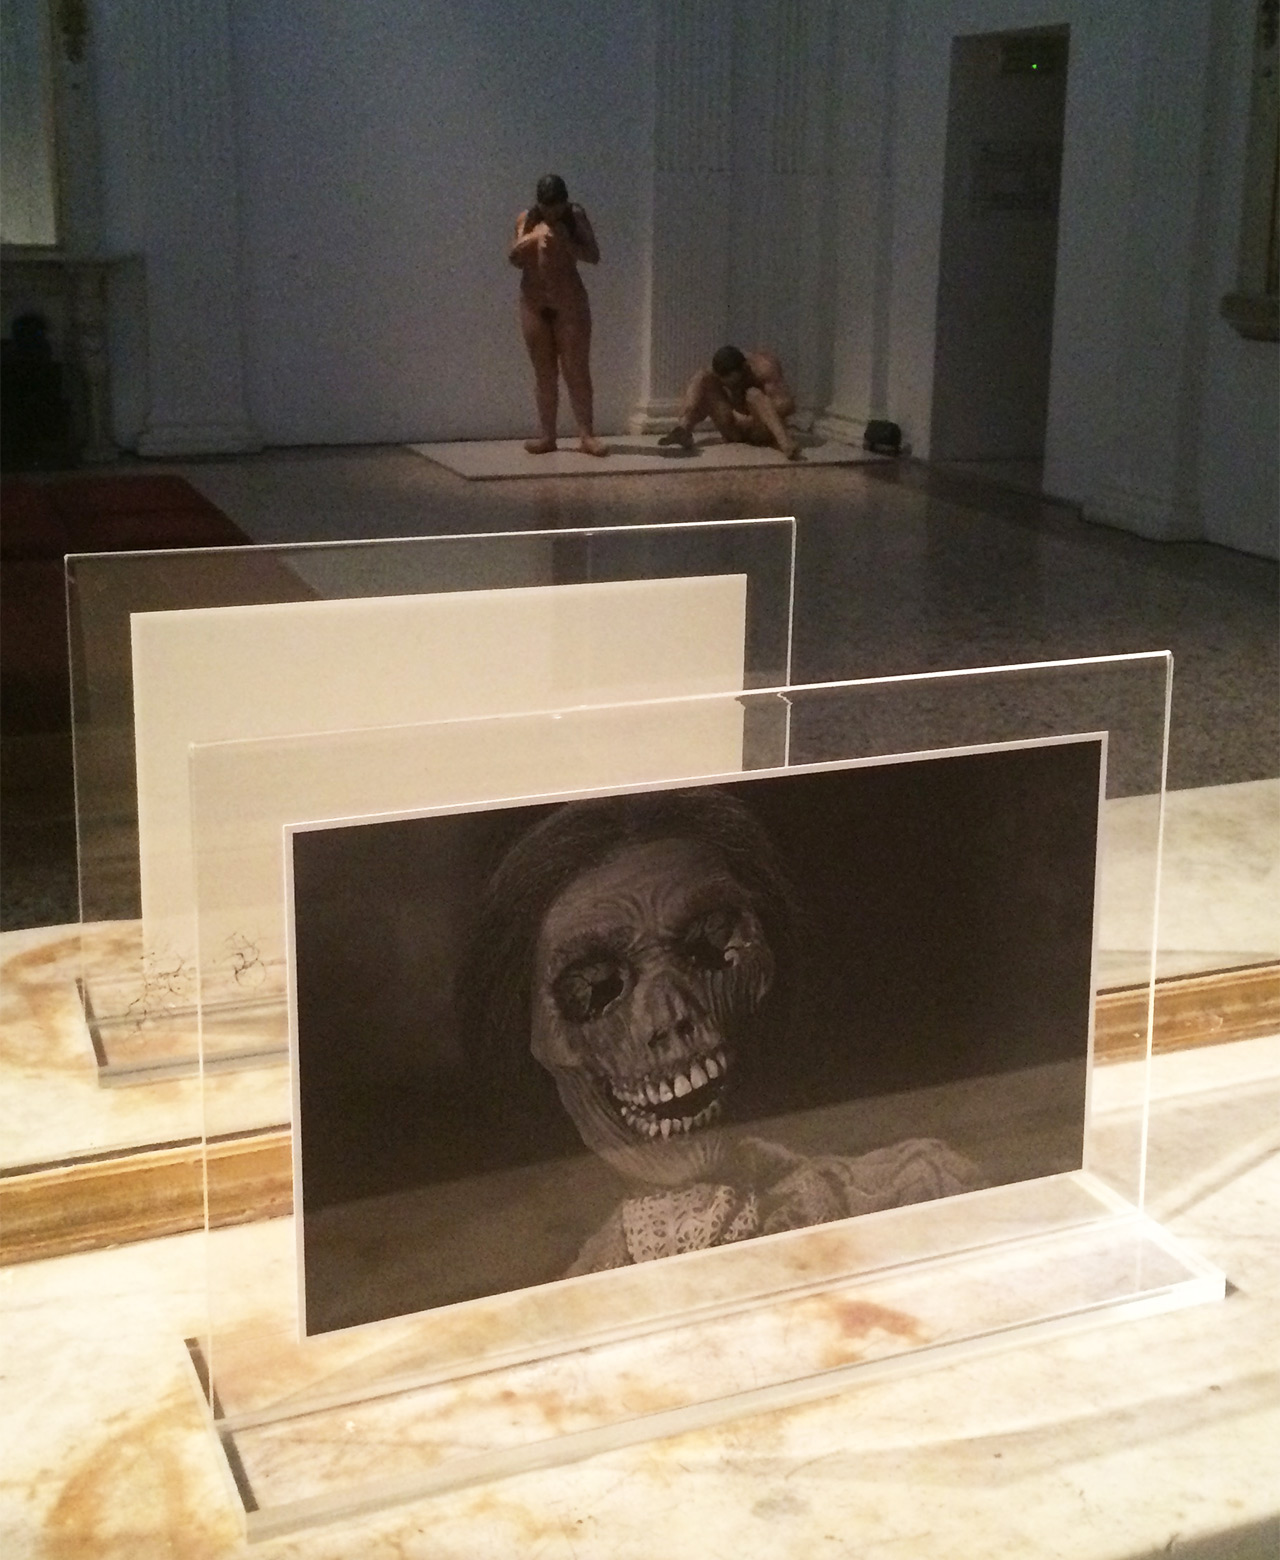 "Installation view with a still from Alfred Hitchcock's 'Psycho' (1960) in the foreground and Kiki Smith's ""Mother/Child"" (1993) reflected in the mirror"